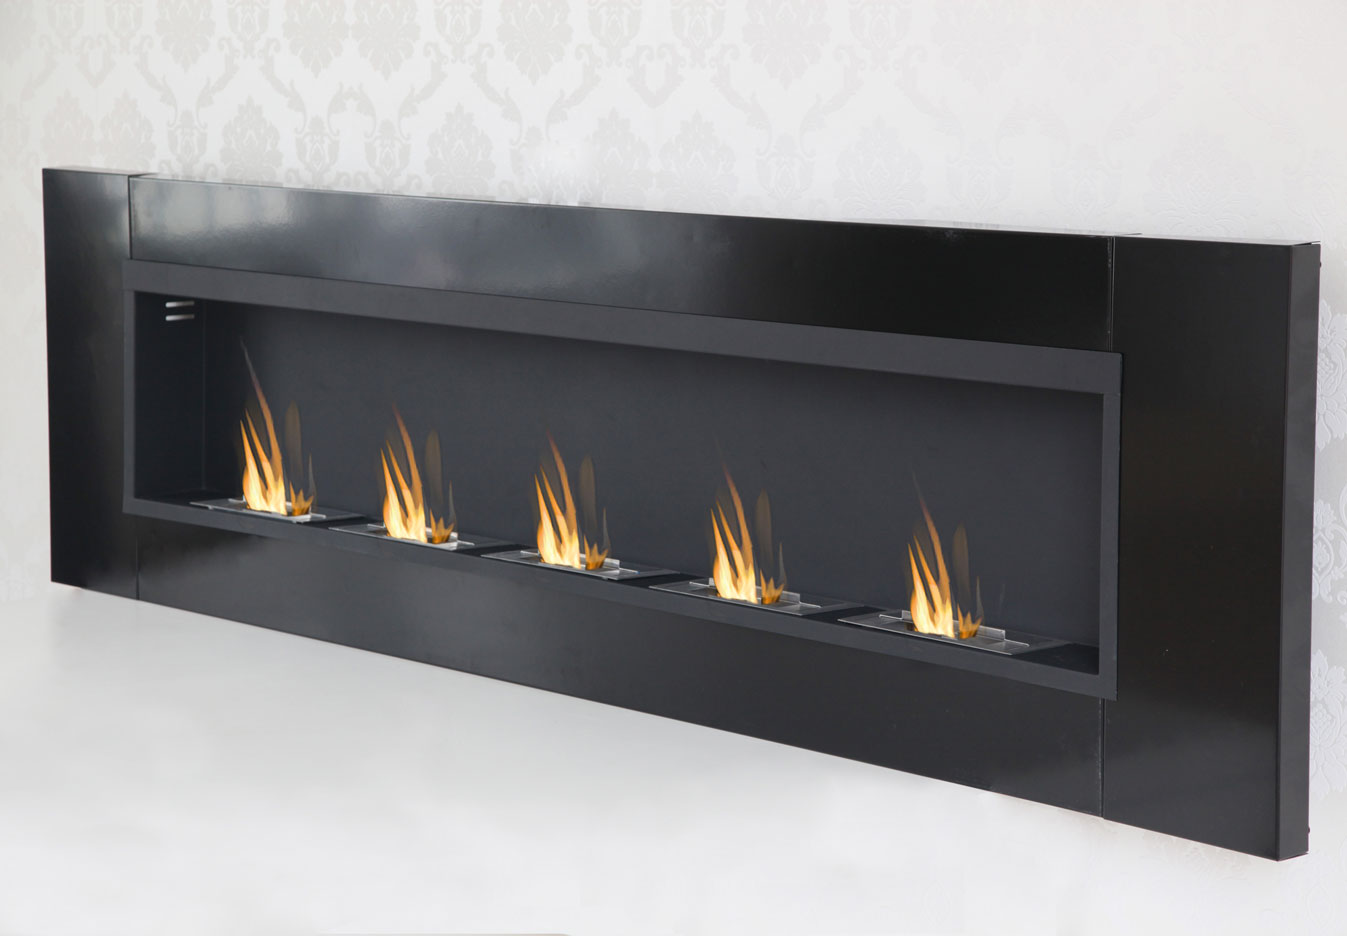 5 burner luxury chimney bio ethanol gel fireplace wall. Black Bedroom Furniture Sets. Home Design Ideas